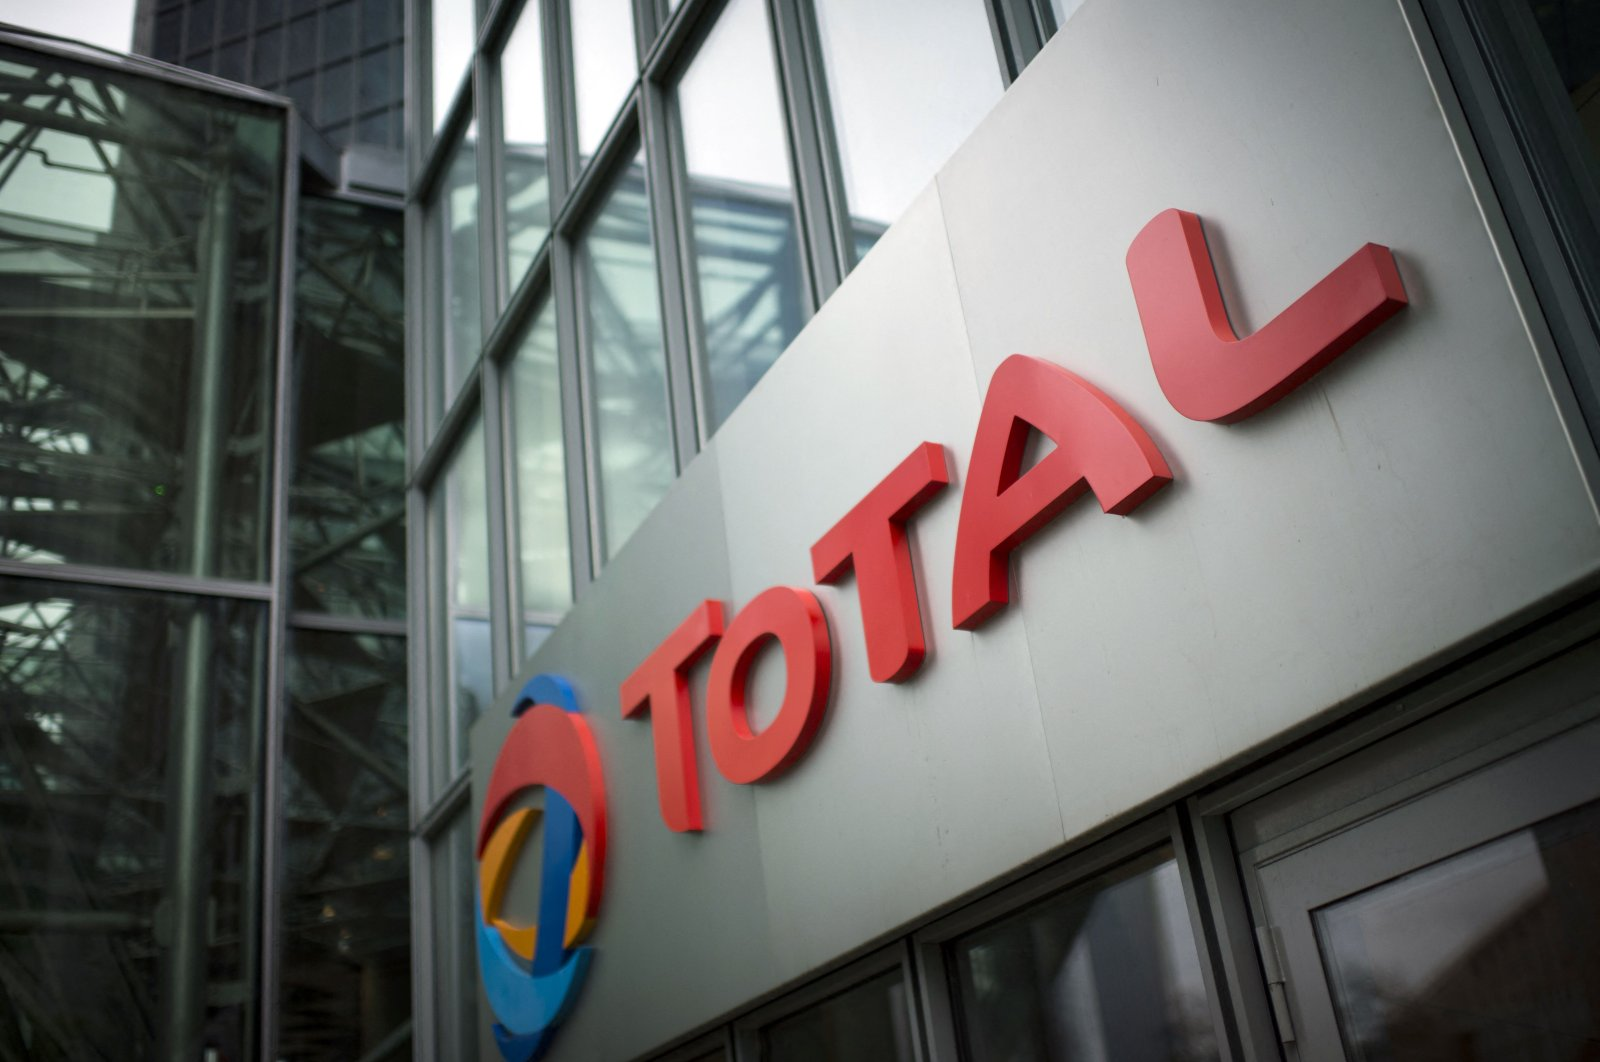 This file photo shows the logo of French oil company headquarters Total in La Defense business district on the outskirts of Paris, France, Oct. 21, 2014.  (AFP Photo)